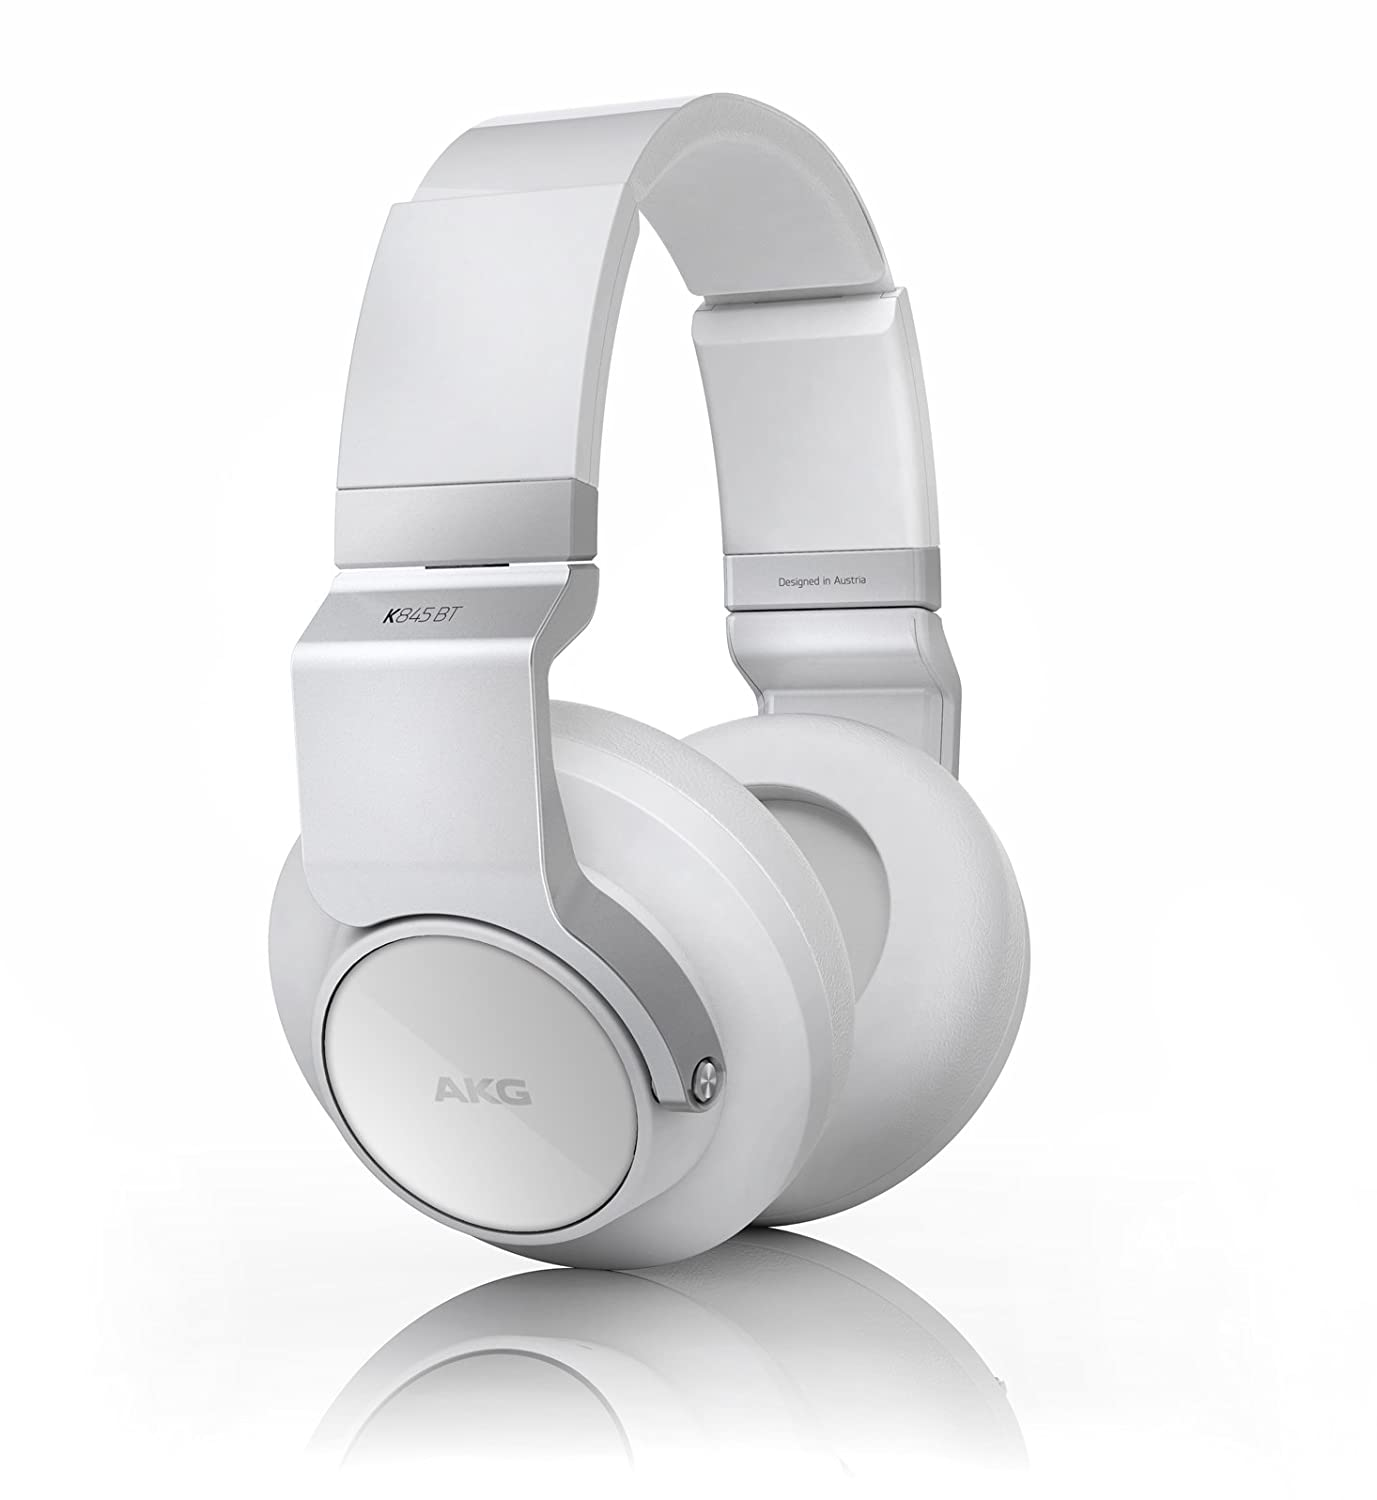 akg headphones futaba. amazon.com: akg k 845bt bluetooth wireless on-ear headphones, white: home audio \u0026 theater akg headphones futaba